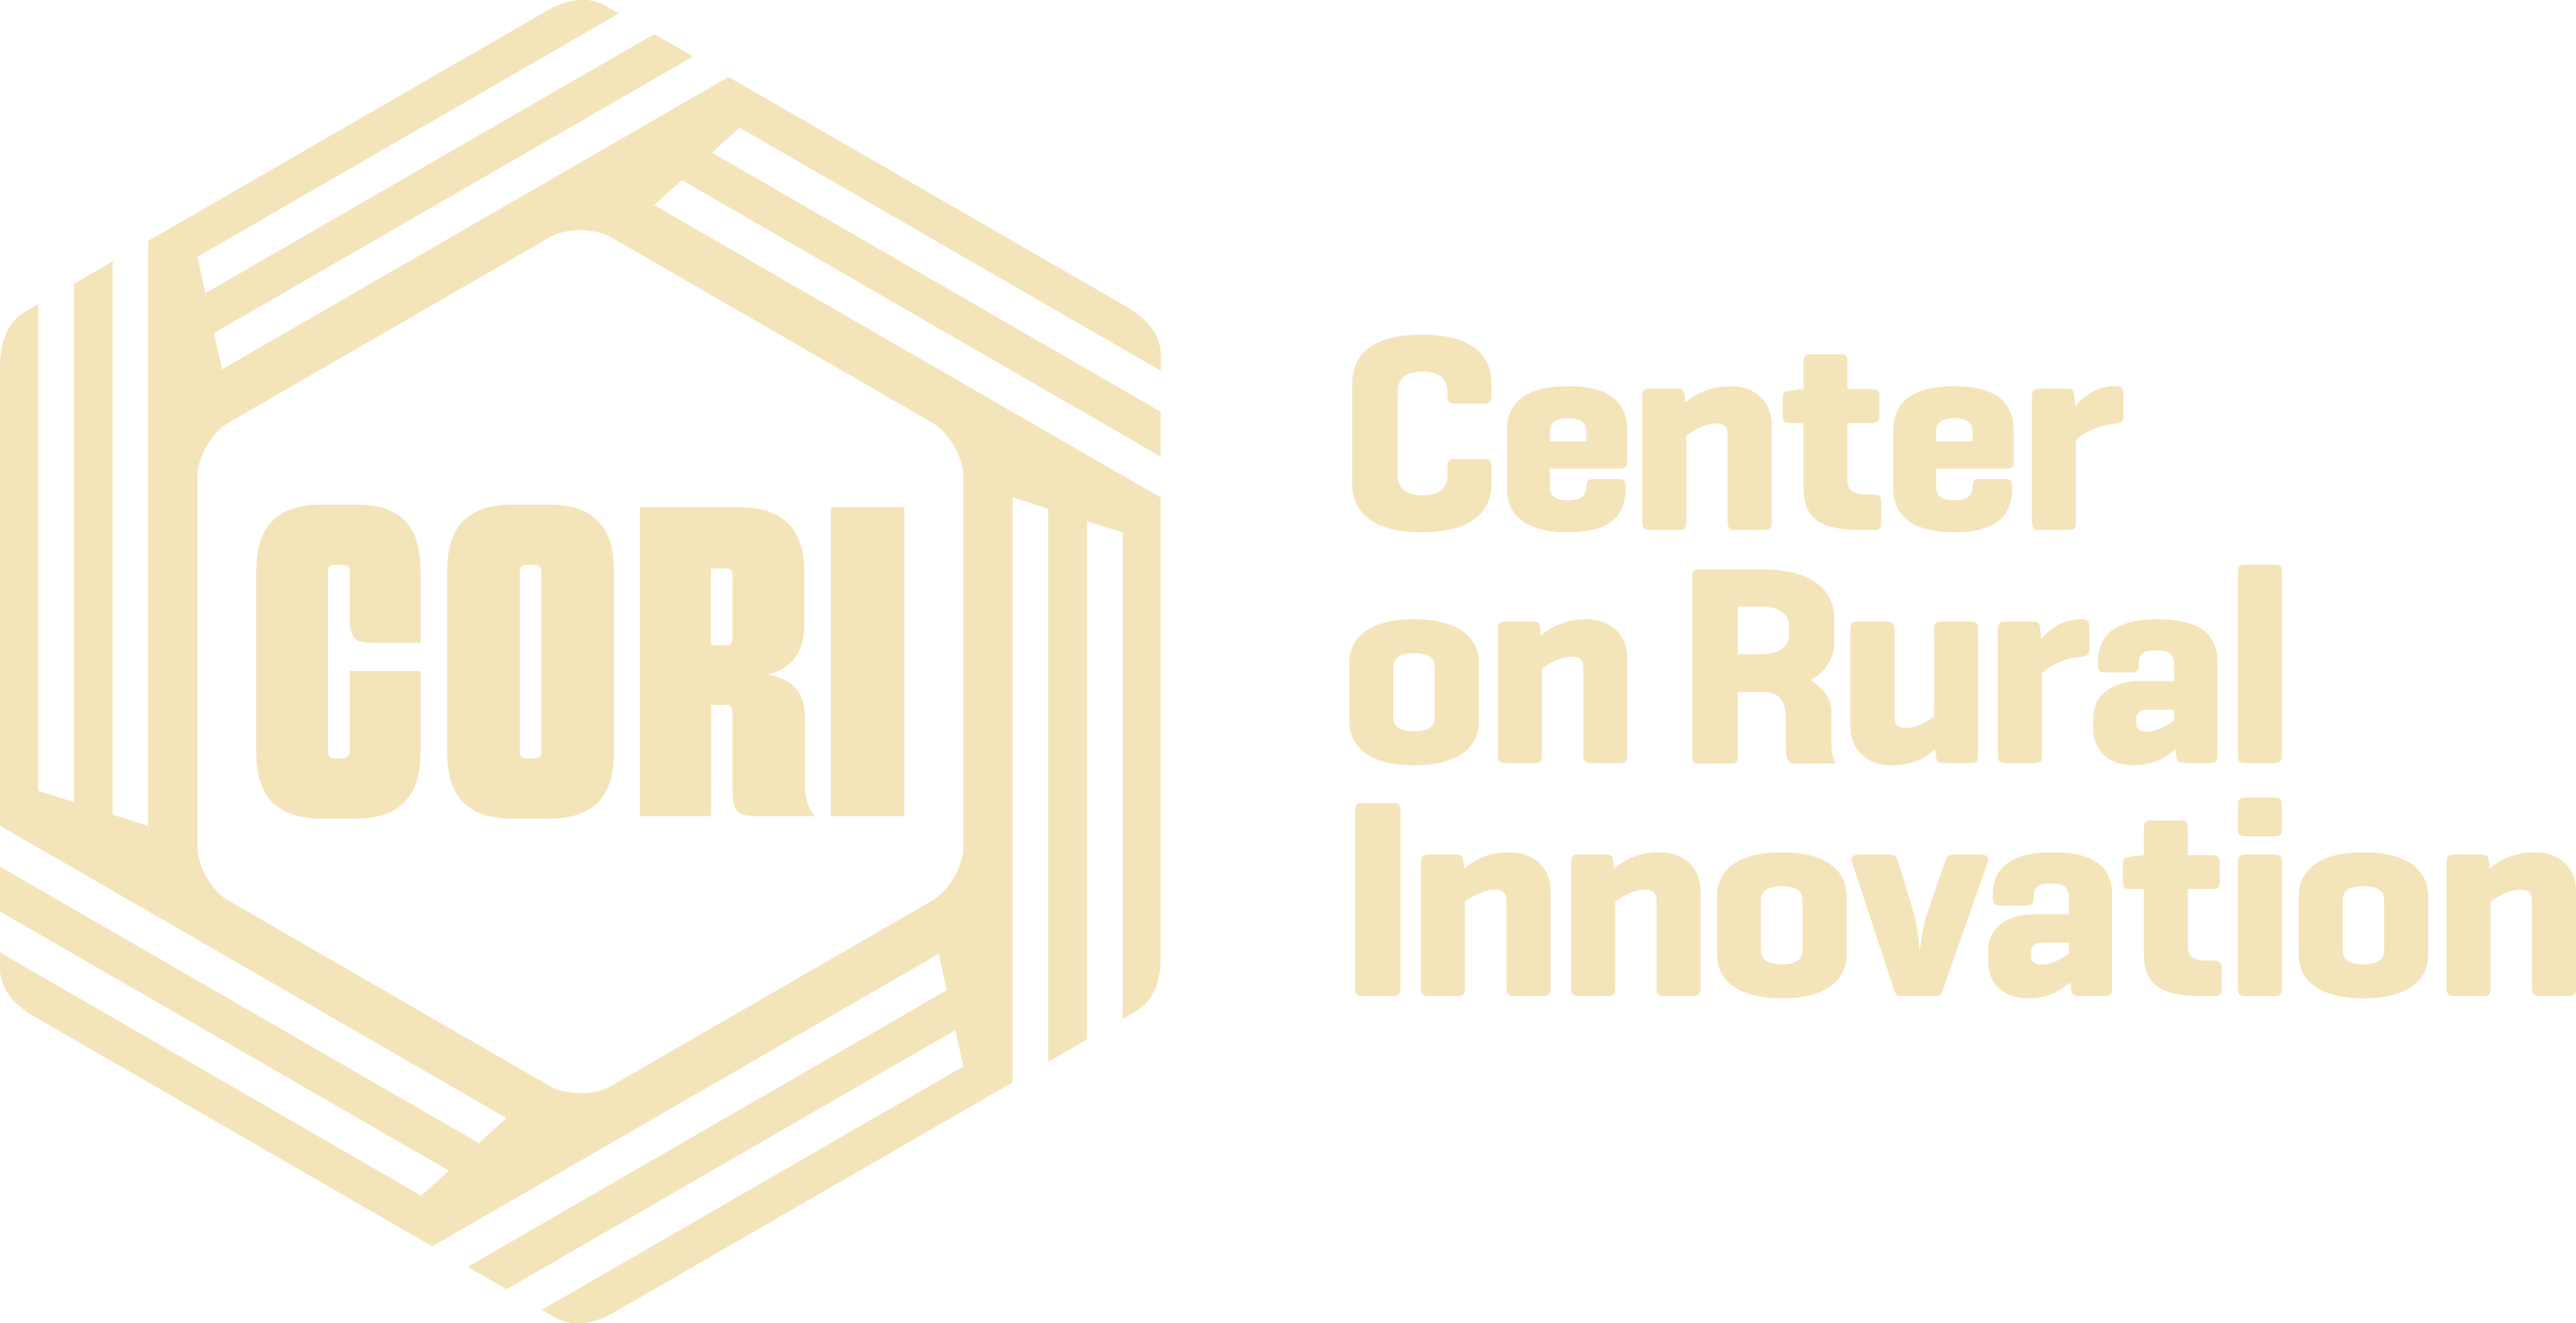 Center on Rural Innovation